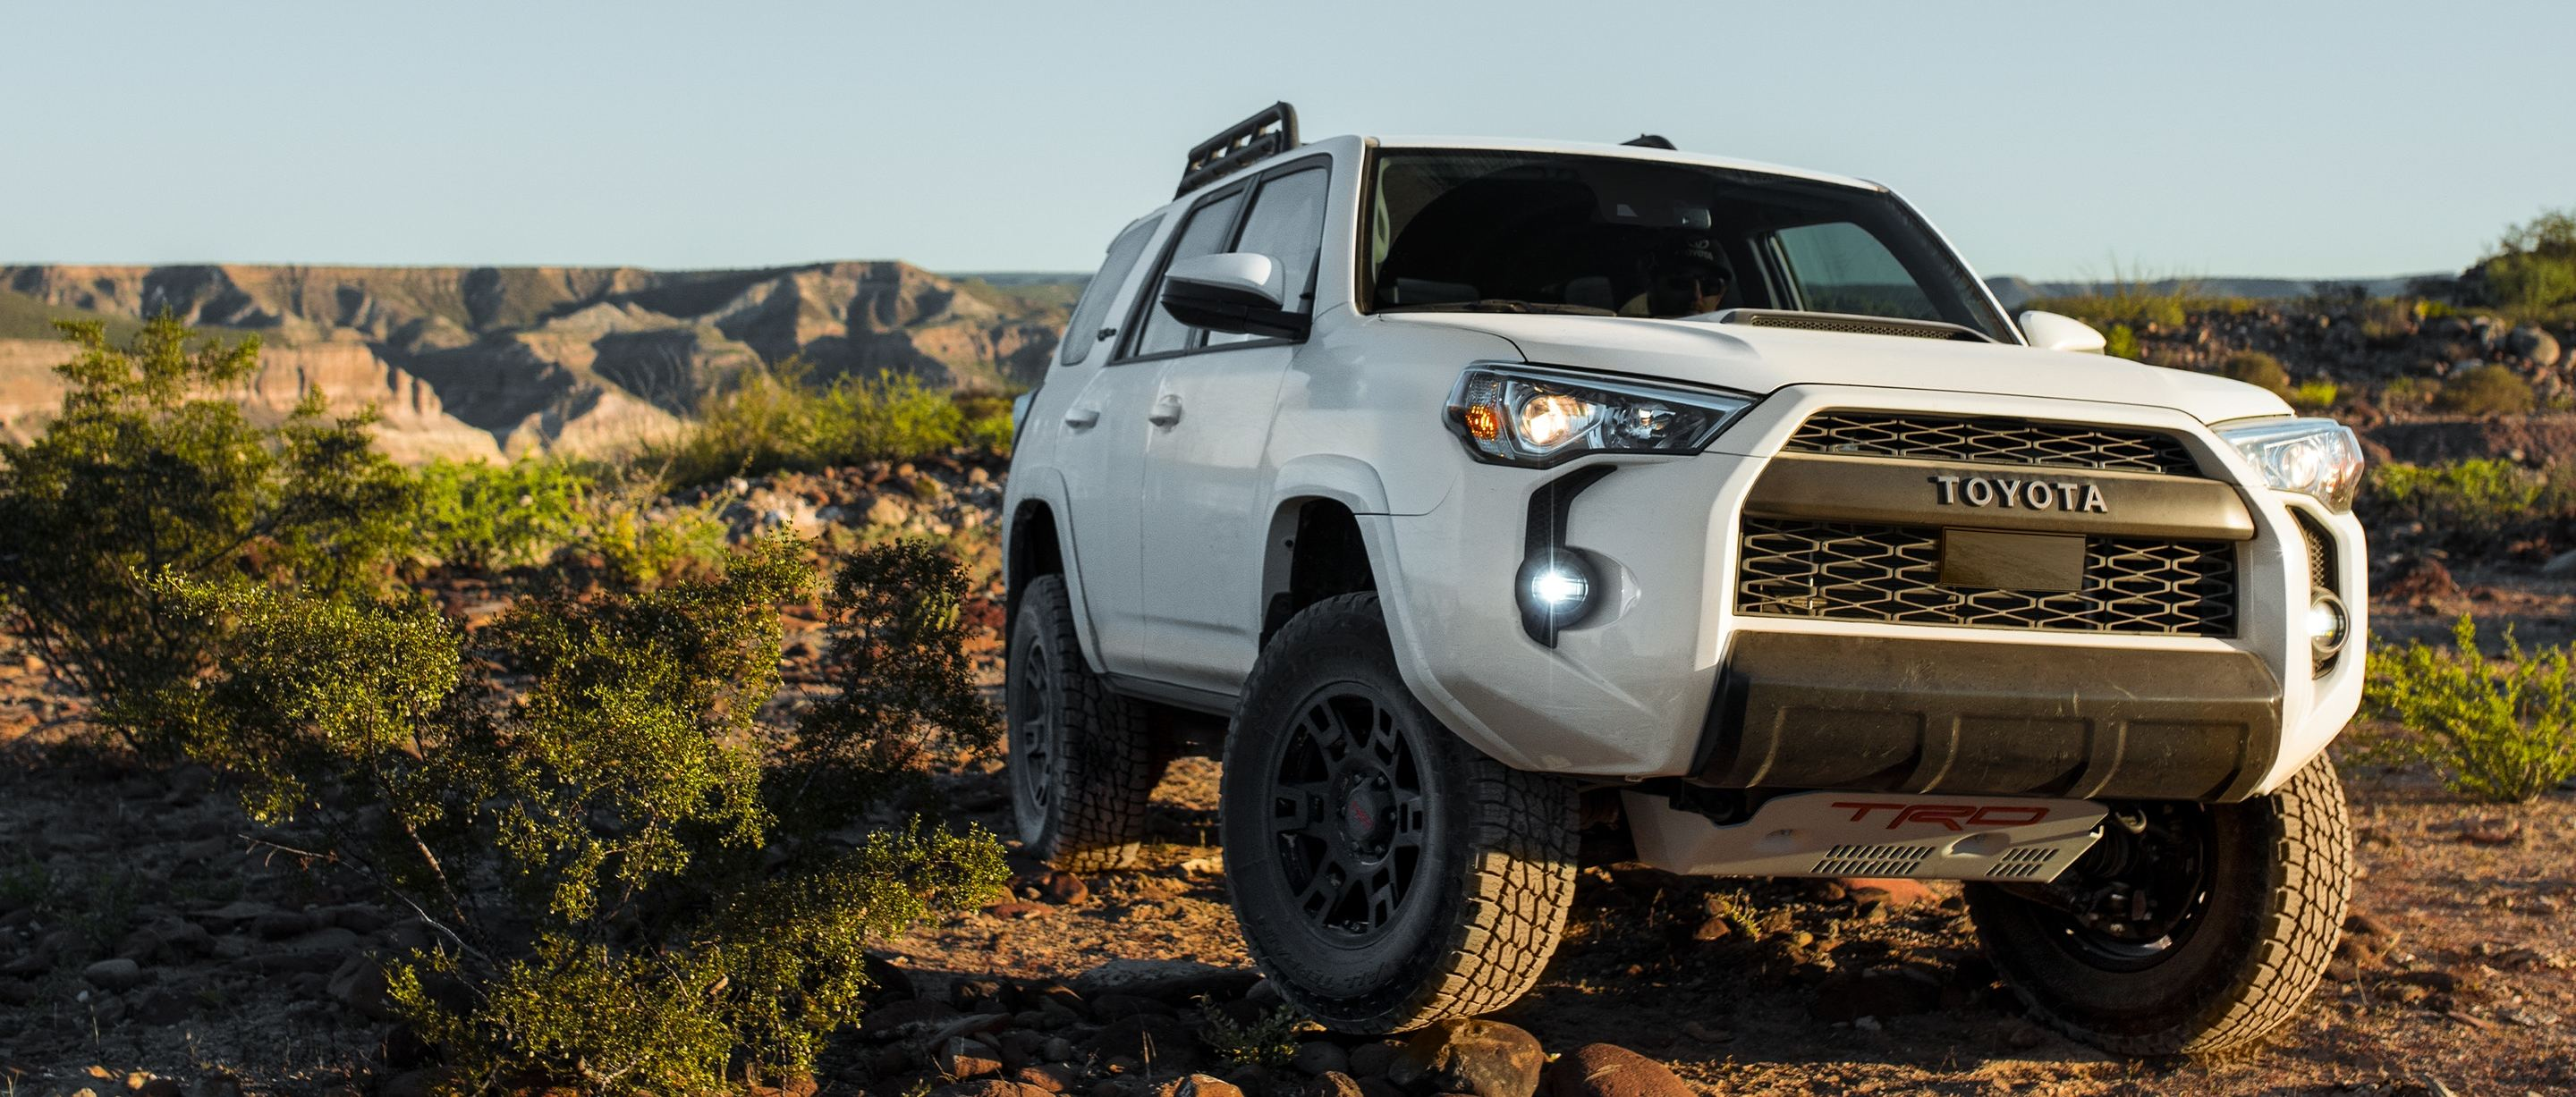 2020 Toyota 4Runner Lease near Independence, MO, 64055